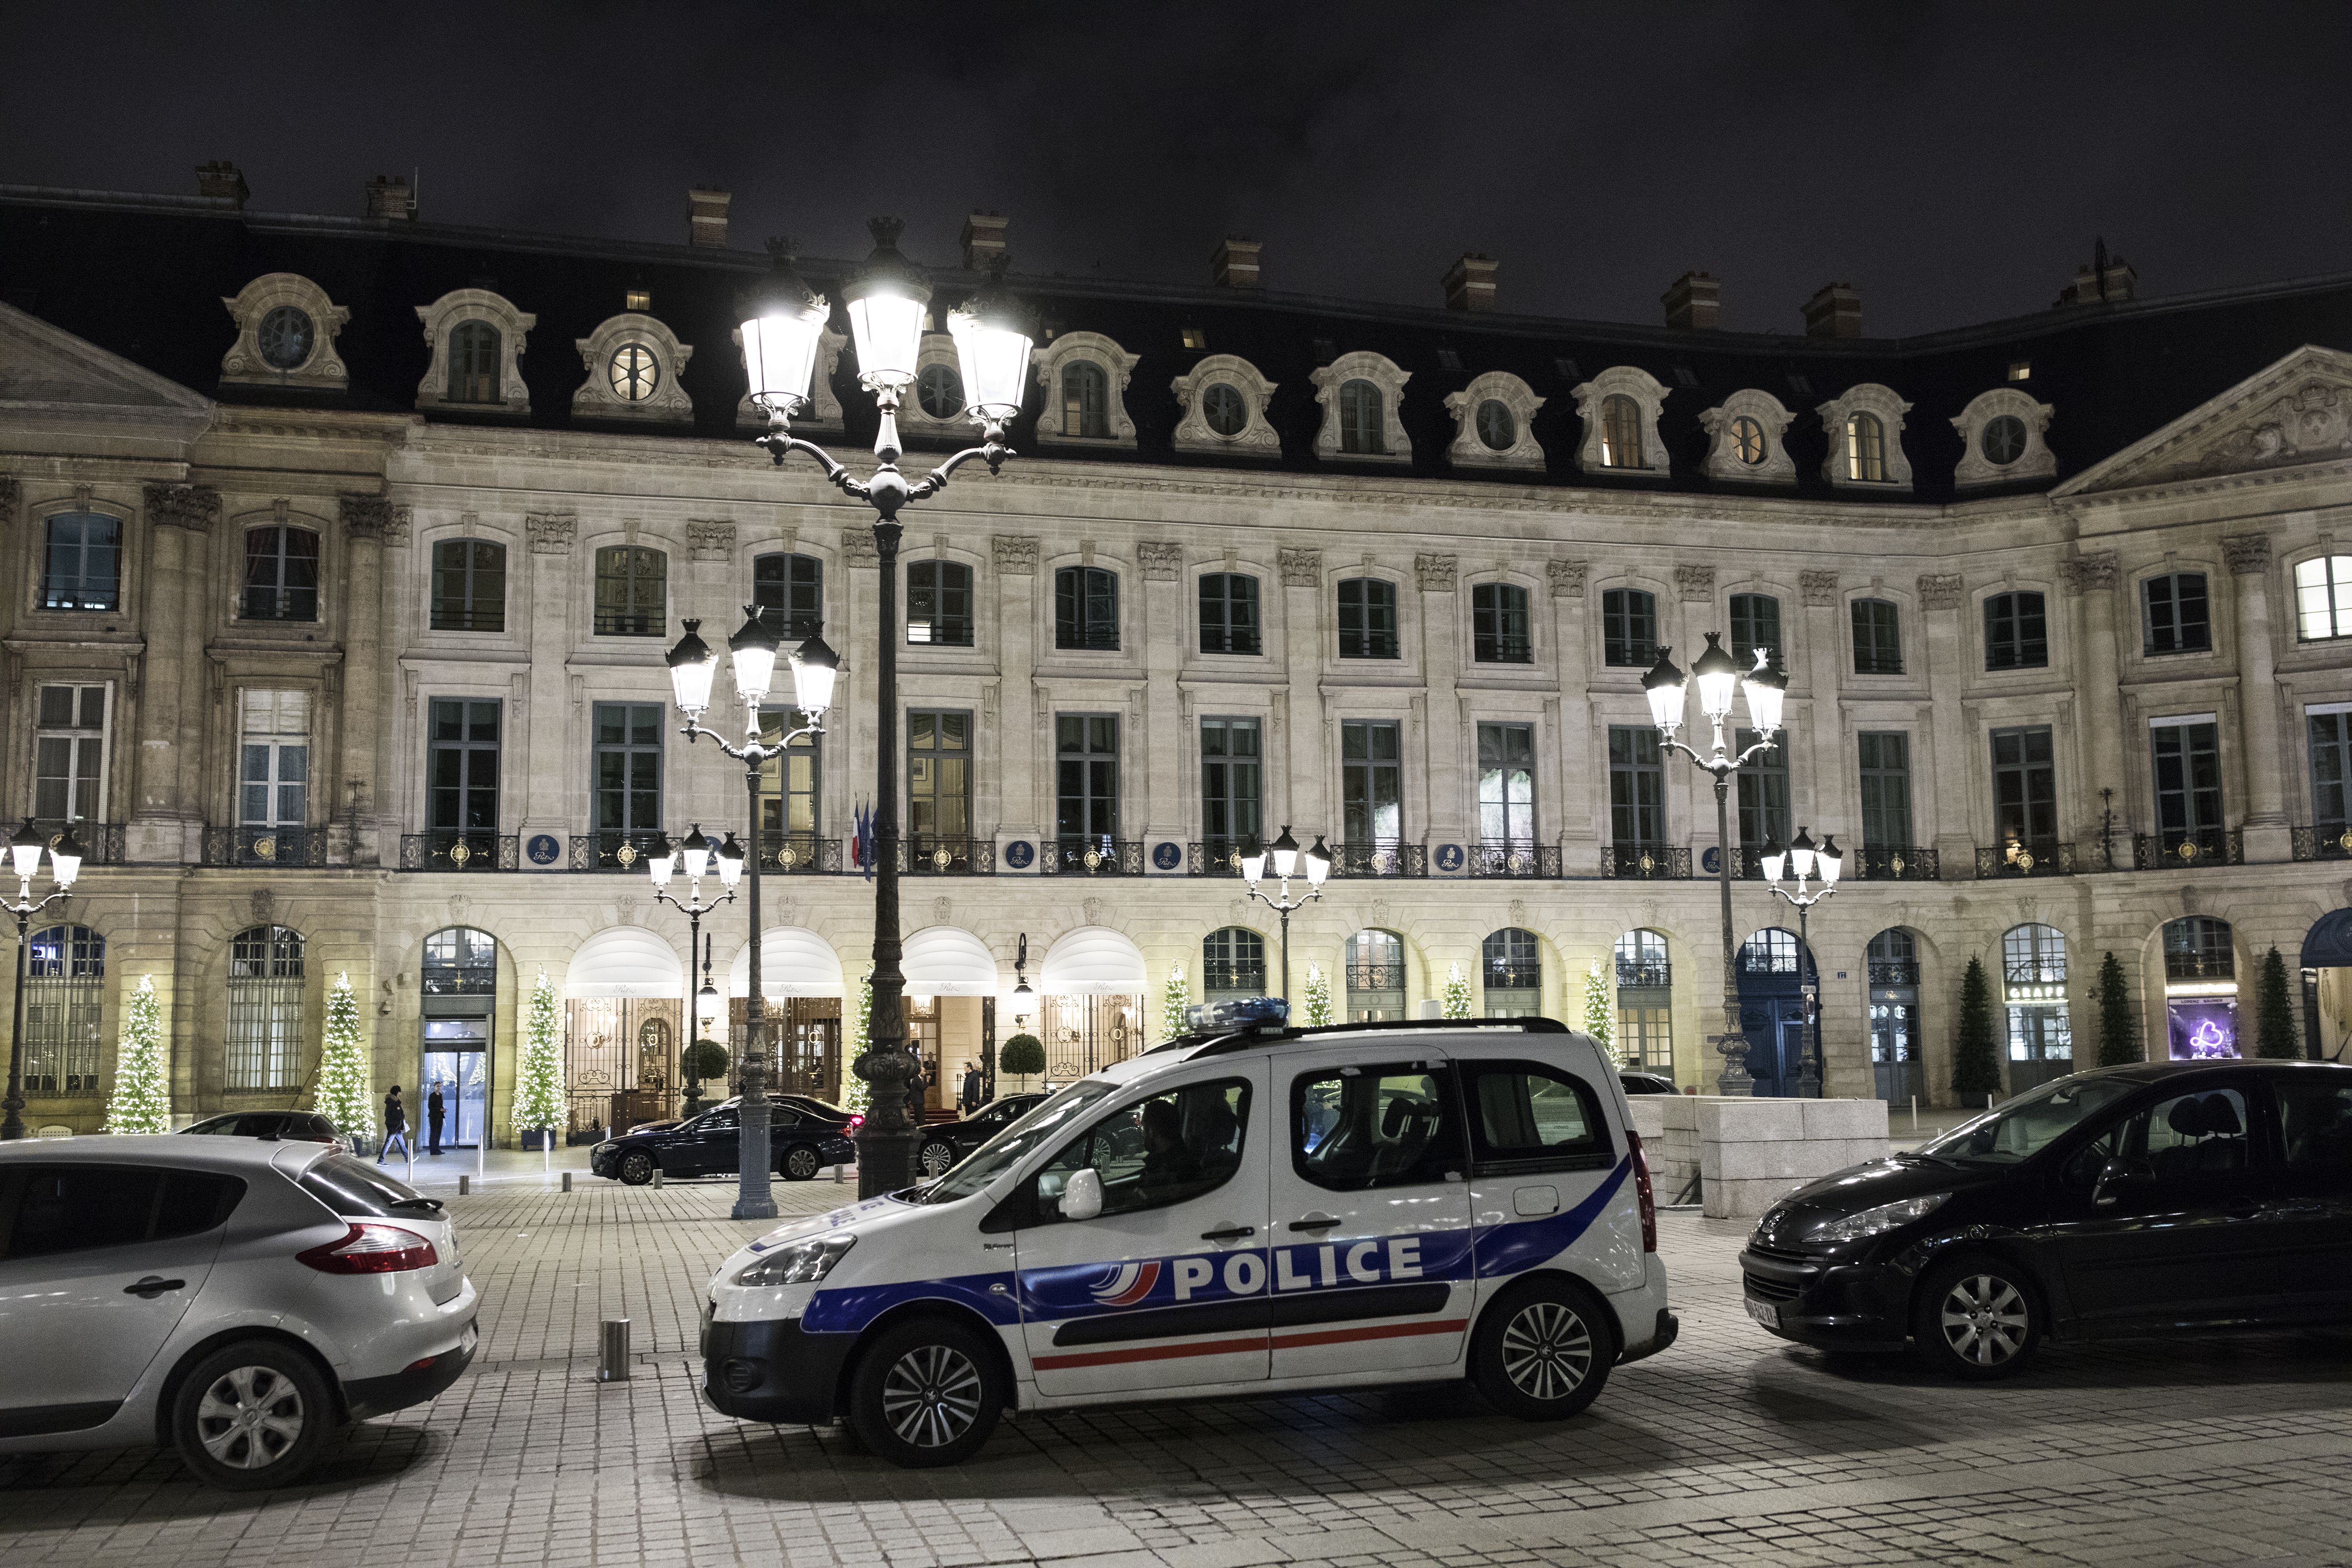 A police car is parked in front of the main entrance of the ritz where a burglary happened in Paris, France, 10 January 2018. According to latest reports, several millions in jewelry were stolen by a group of five individuals among which three were arrested and 2 fled on a scooter.Ritz Carlton hotel in Paris robbed, France - 10 Jan 2018